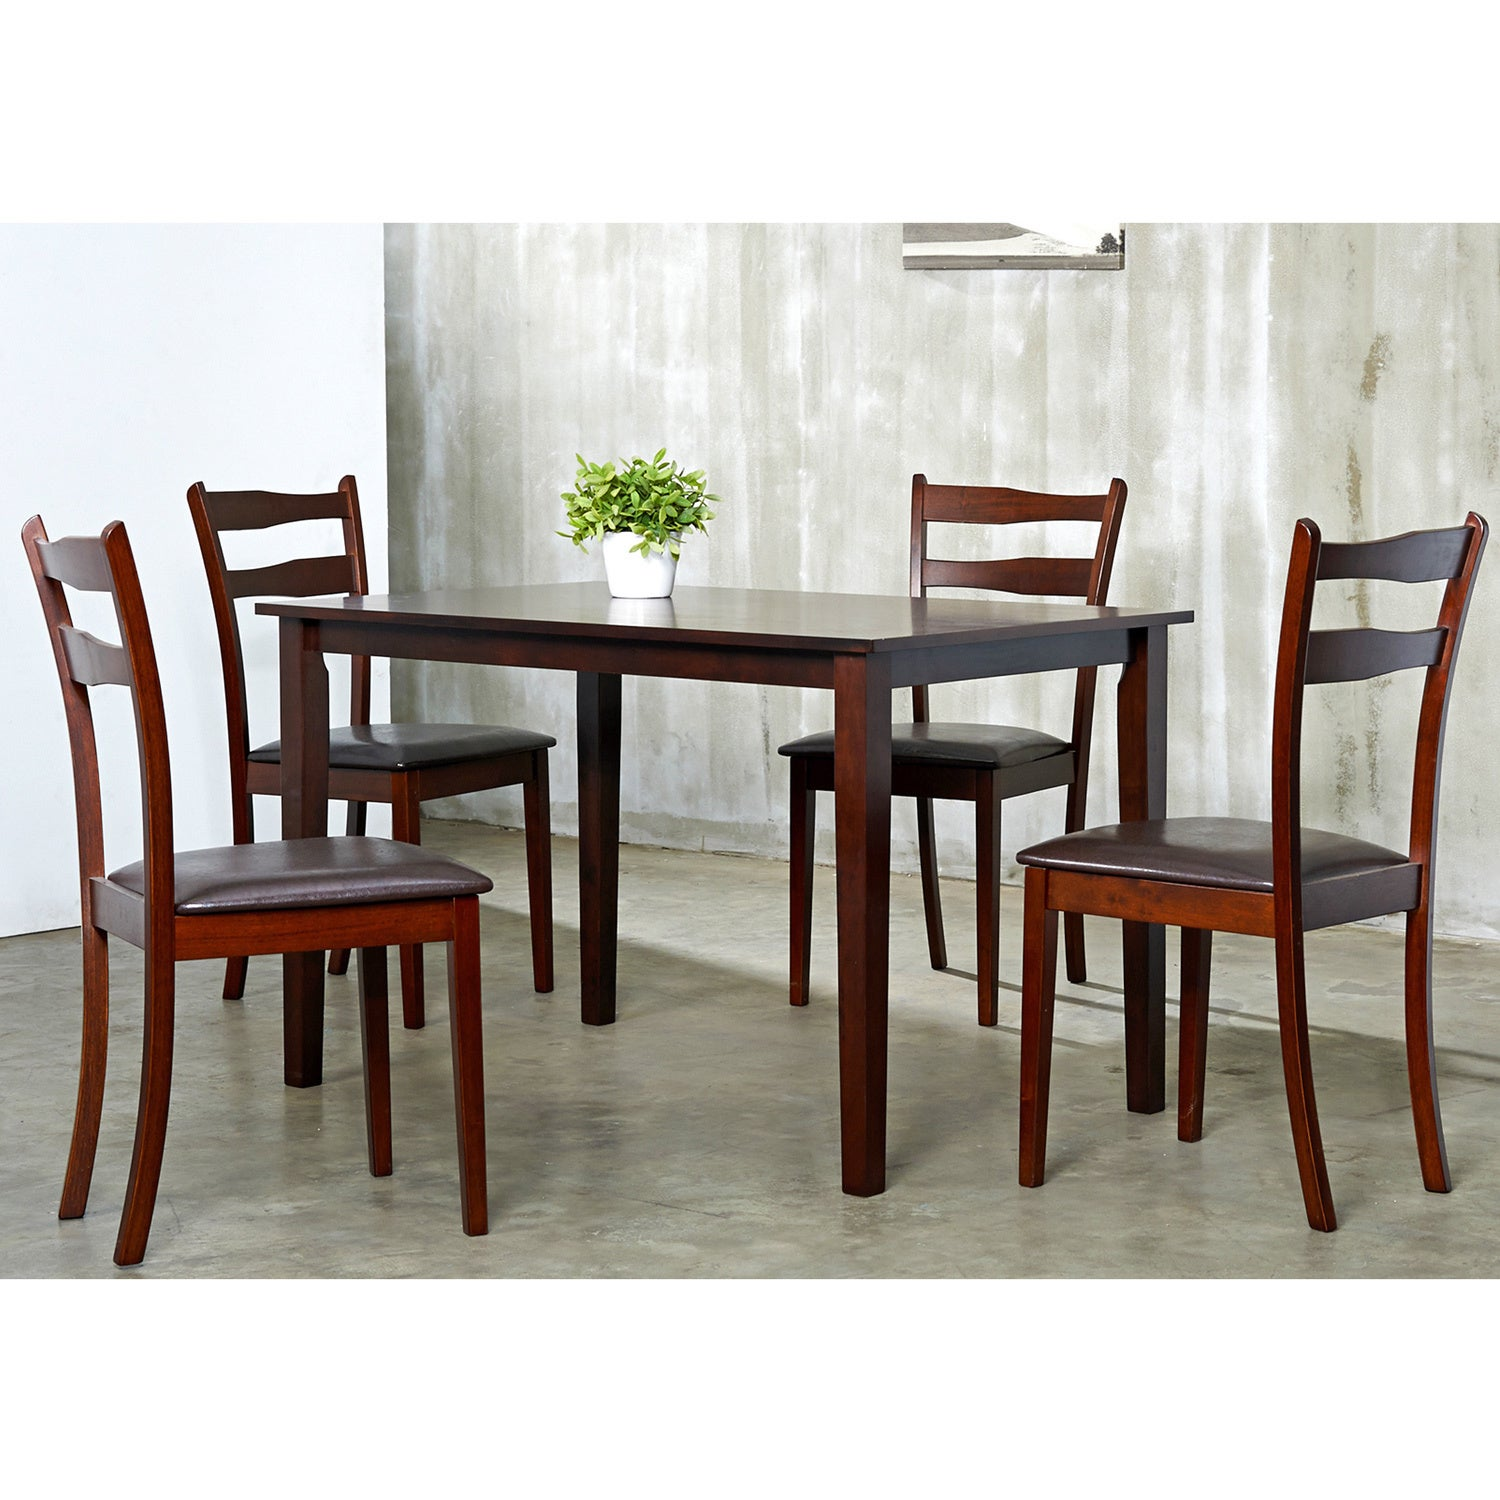 callan 5 piece dining room furniture set overstock shopping big